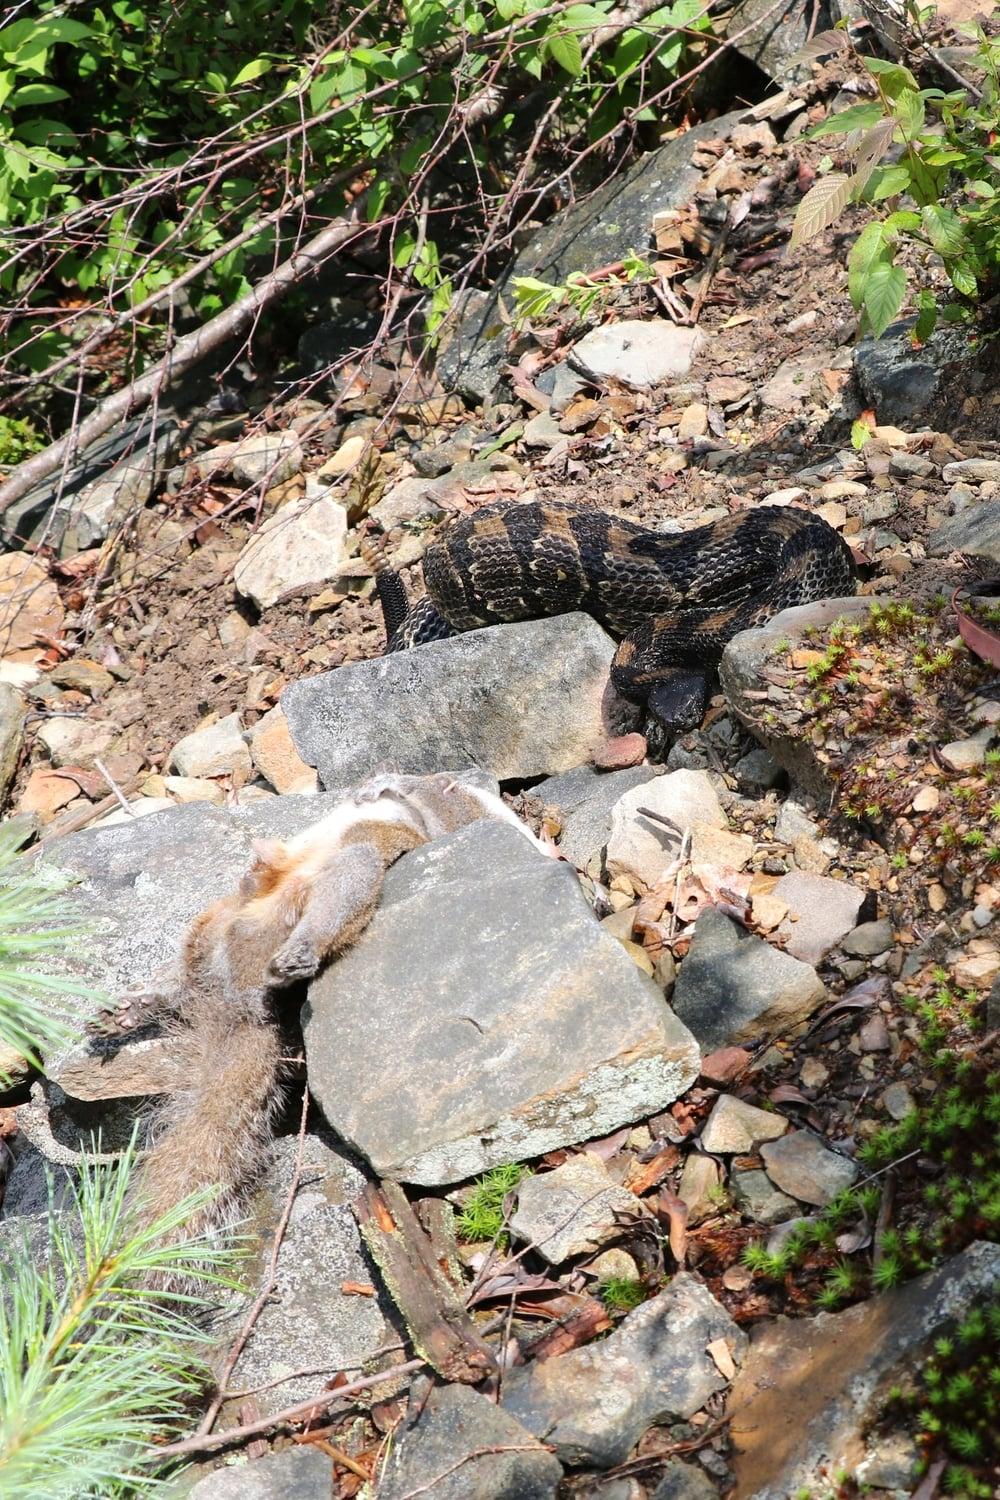 Timber Rattlesnake - With a meal that it had no interest in... at least while we were watching.